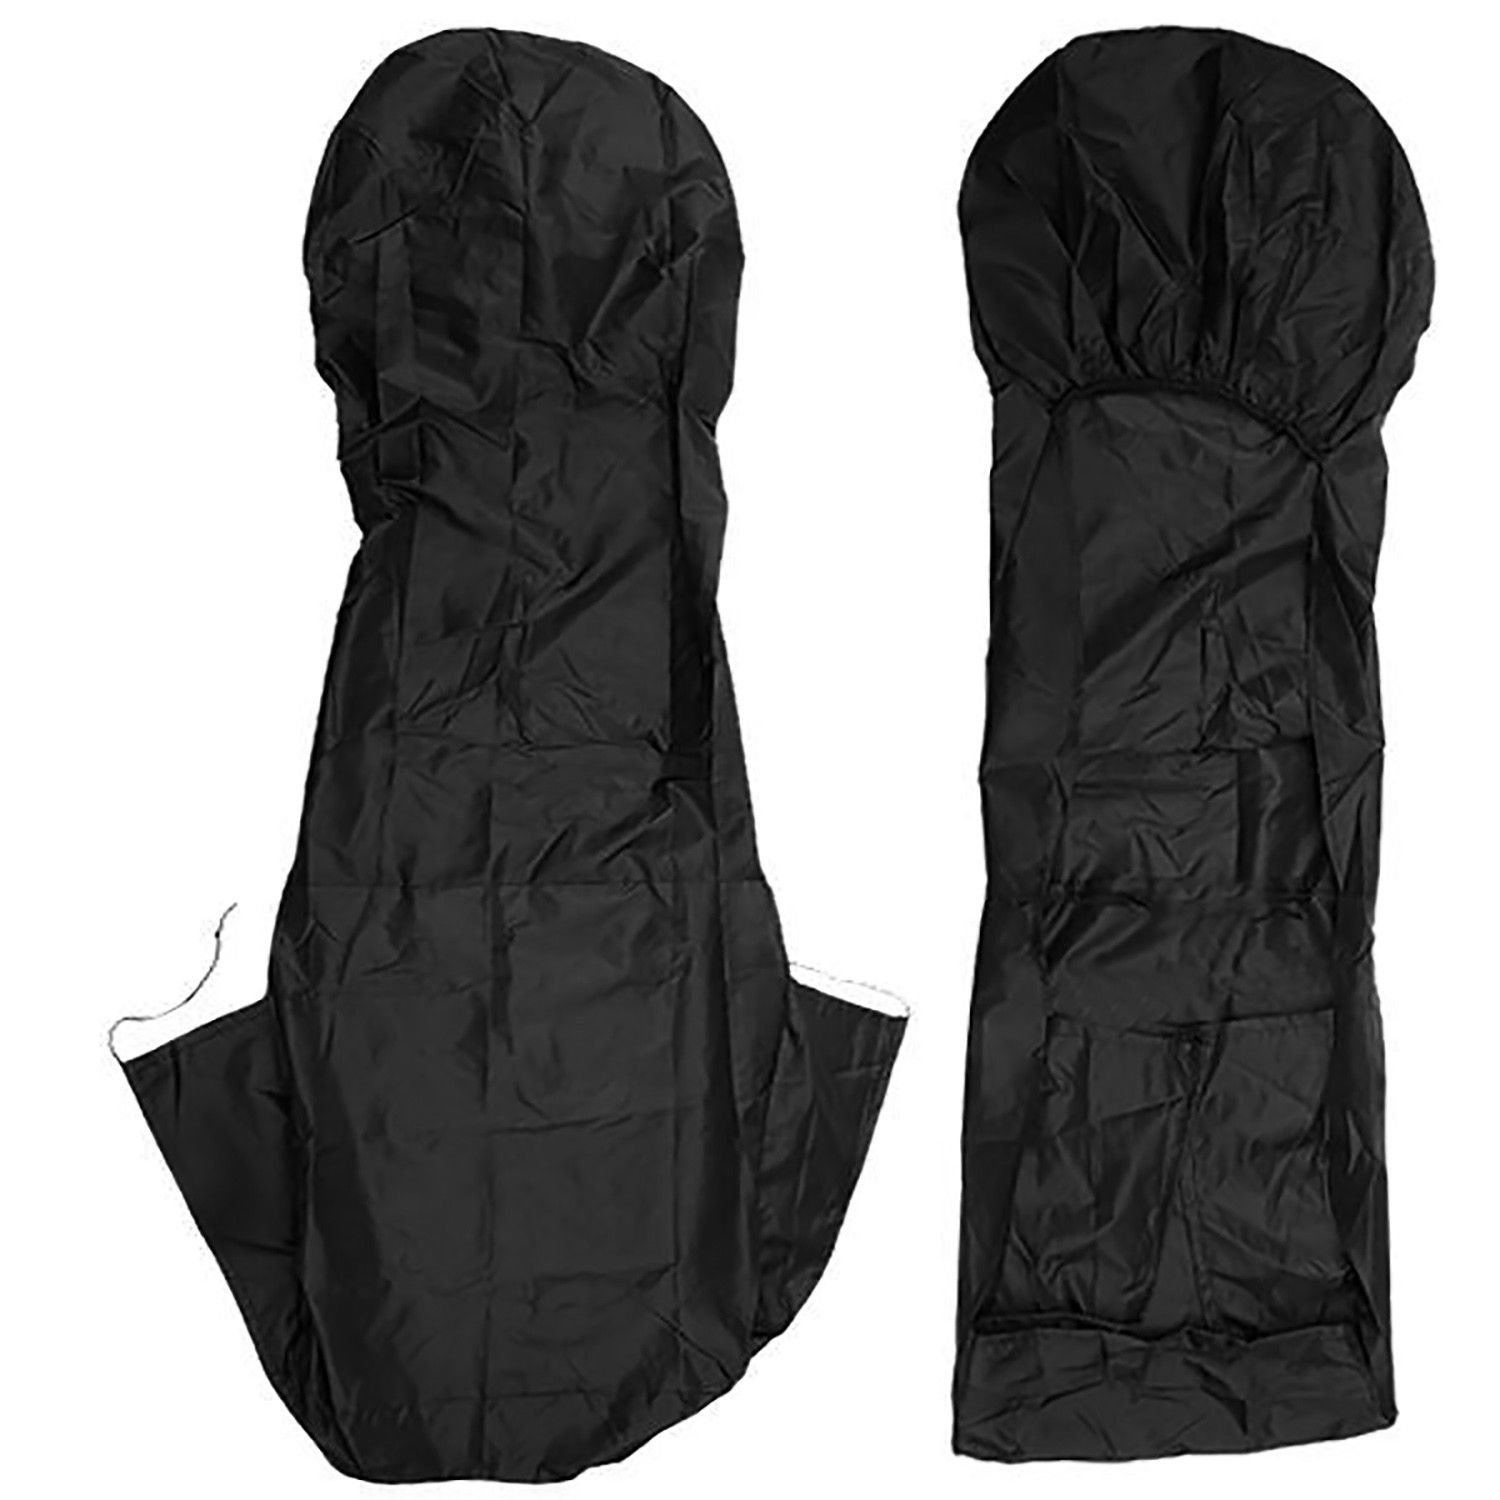 2 Heavy Duty /& Comfortable For Long Distance Travelling XtremeAuto Lorry//Truck//Bus Front Water Resistant Seat Cover